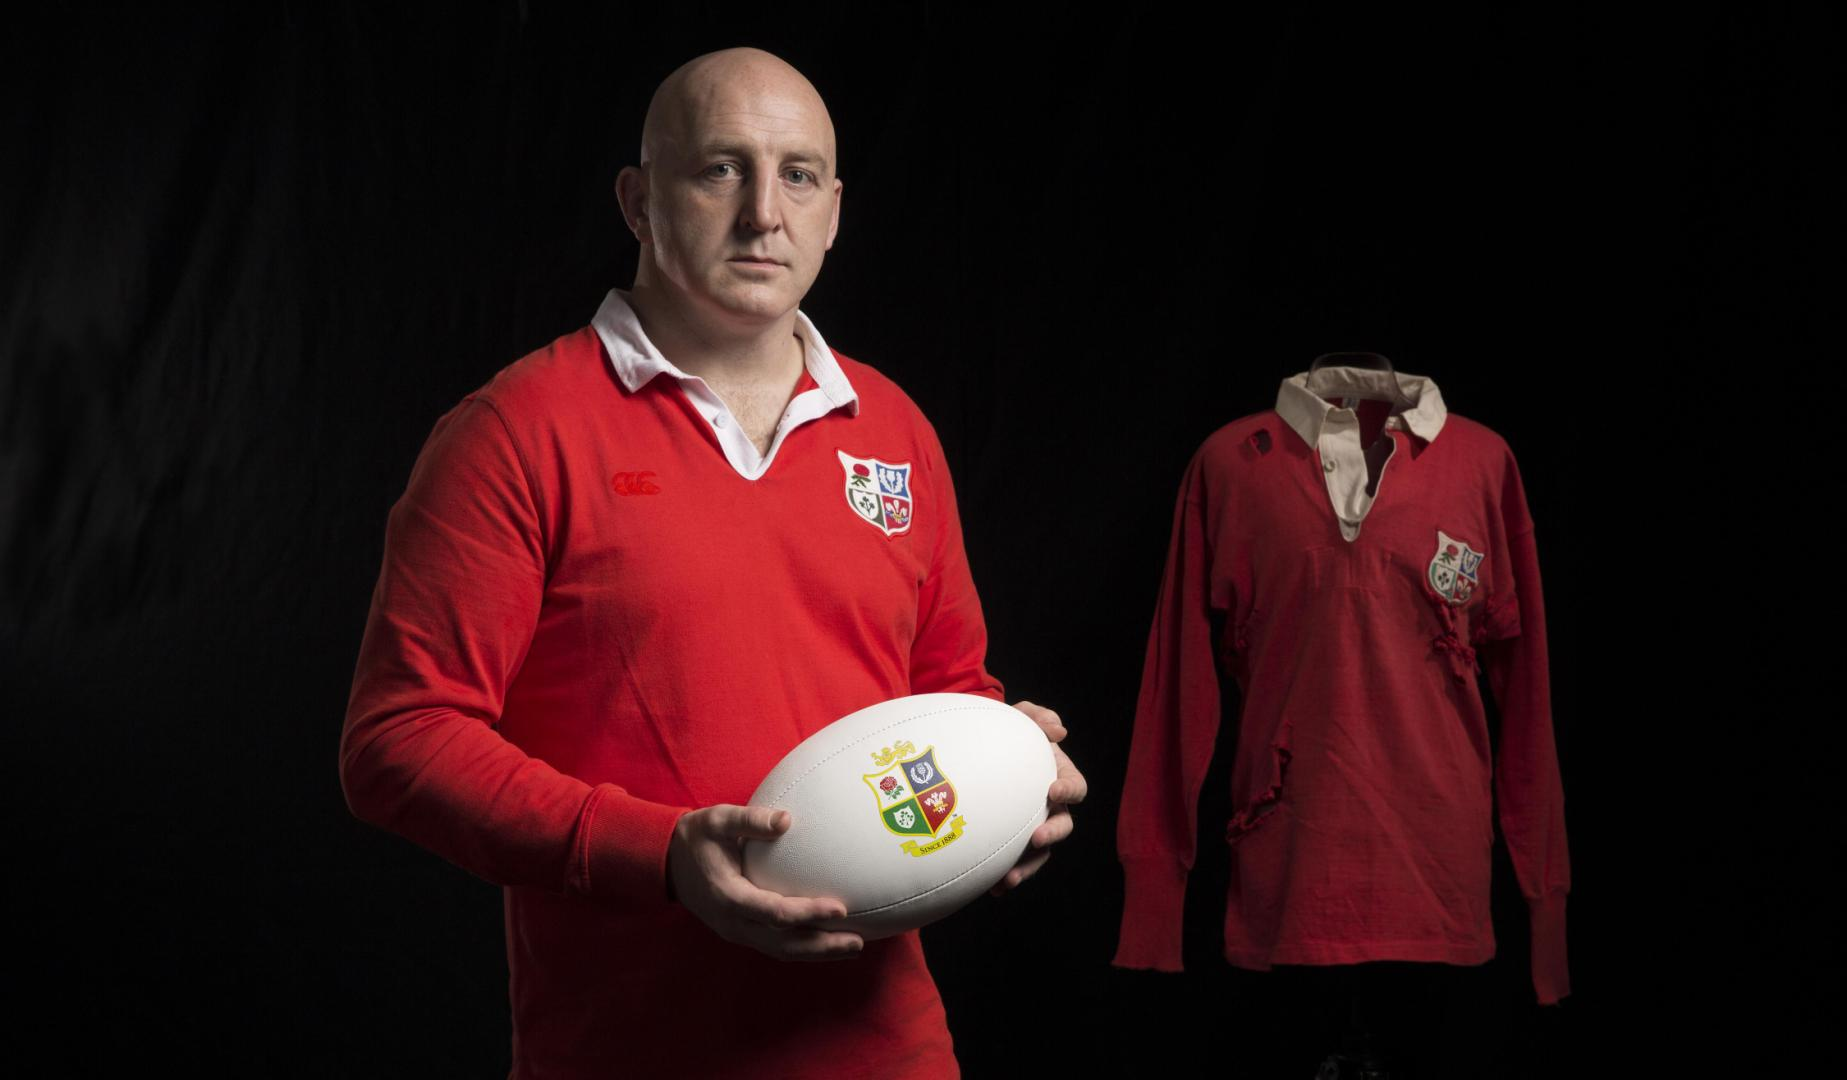 Canterbury commemorate 1959 tour with new jersey